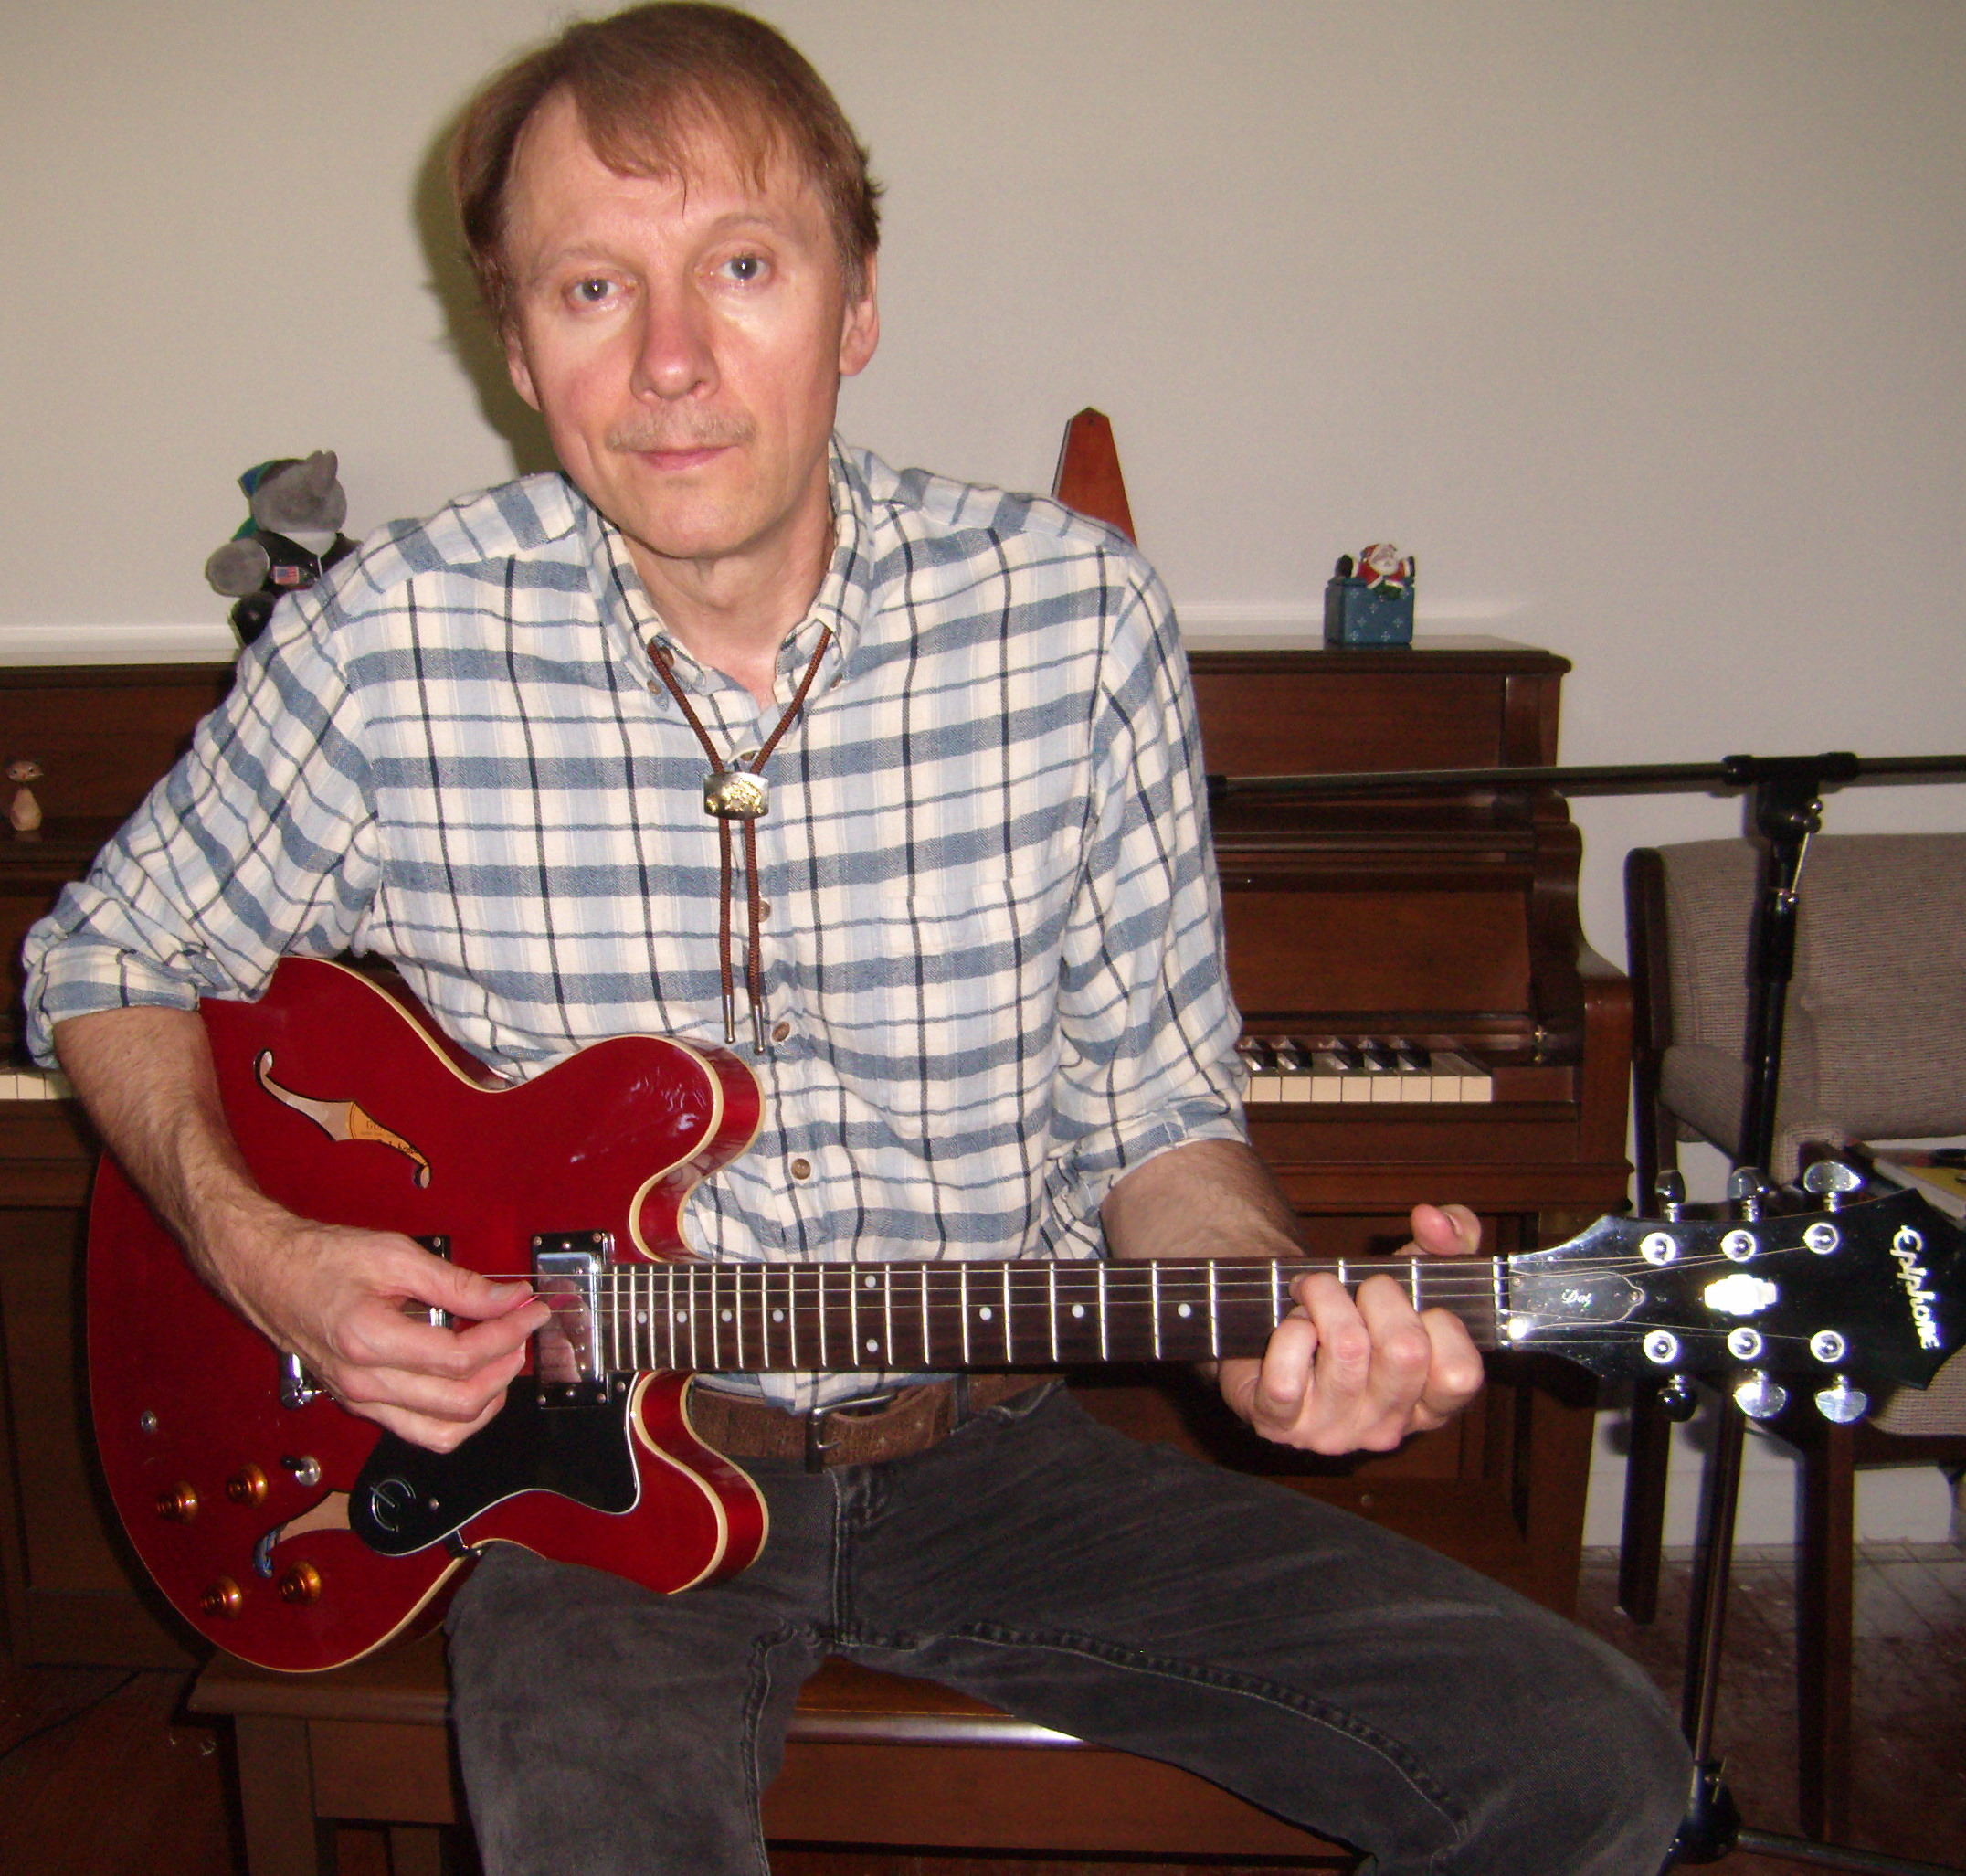 Rick at work in his home studio